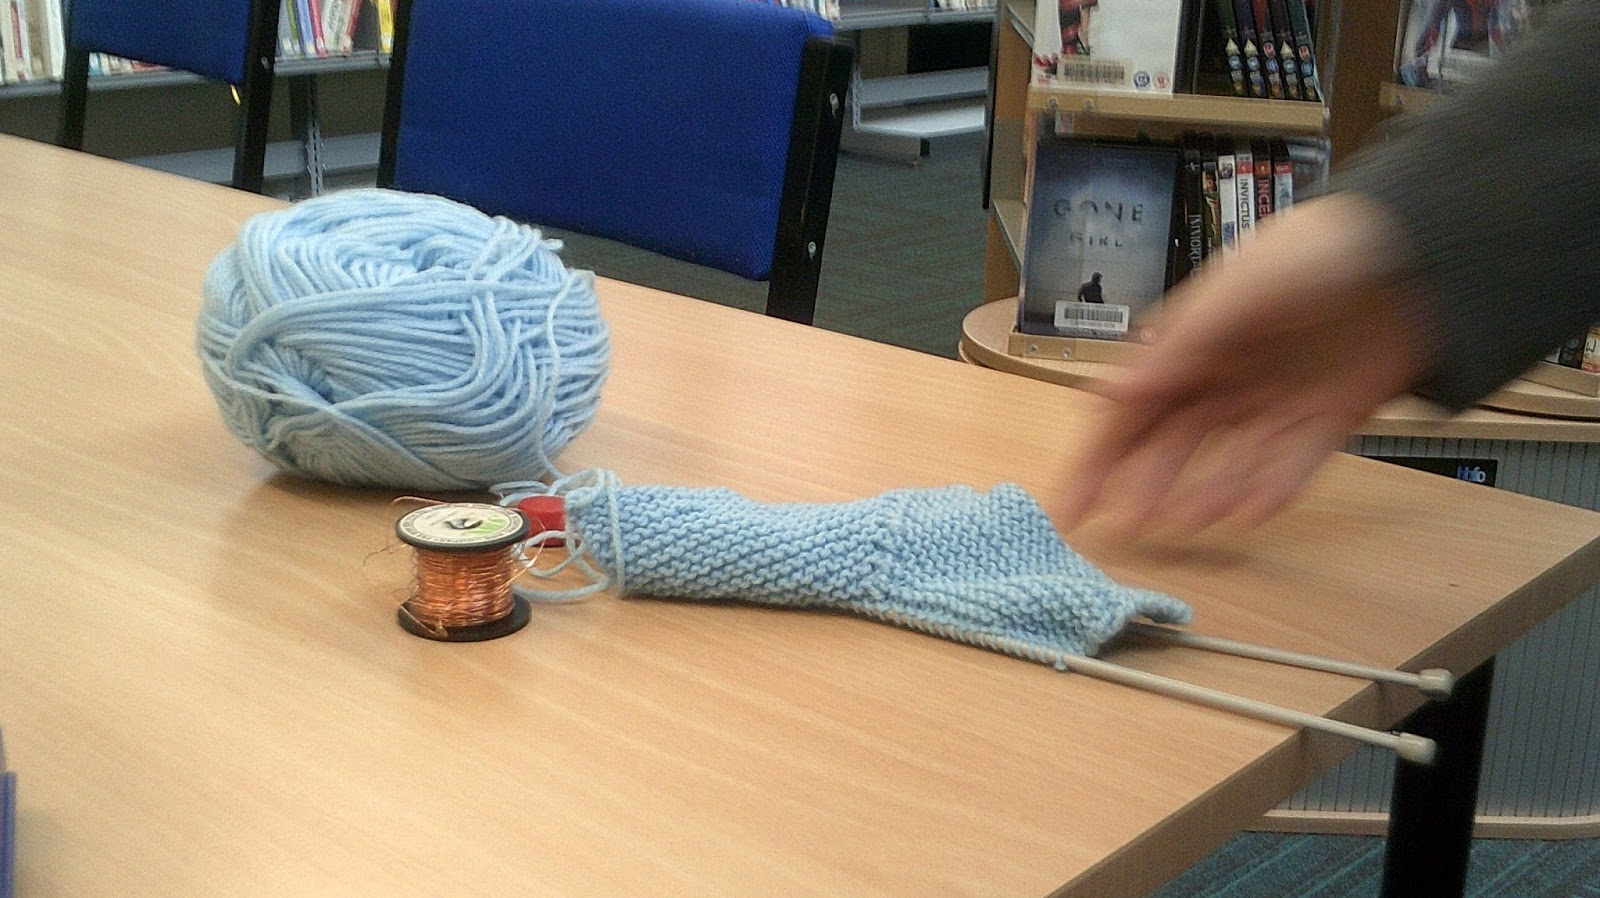 wigton physics: Standard wire gauge and knitting needles